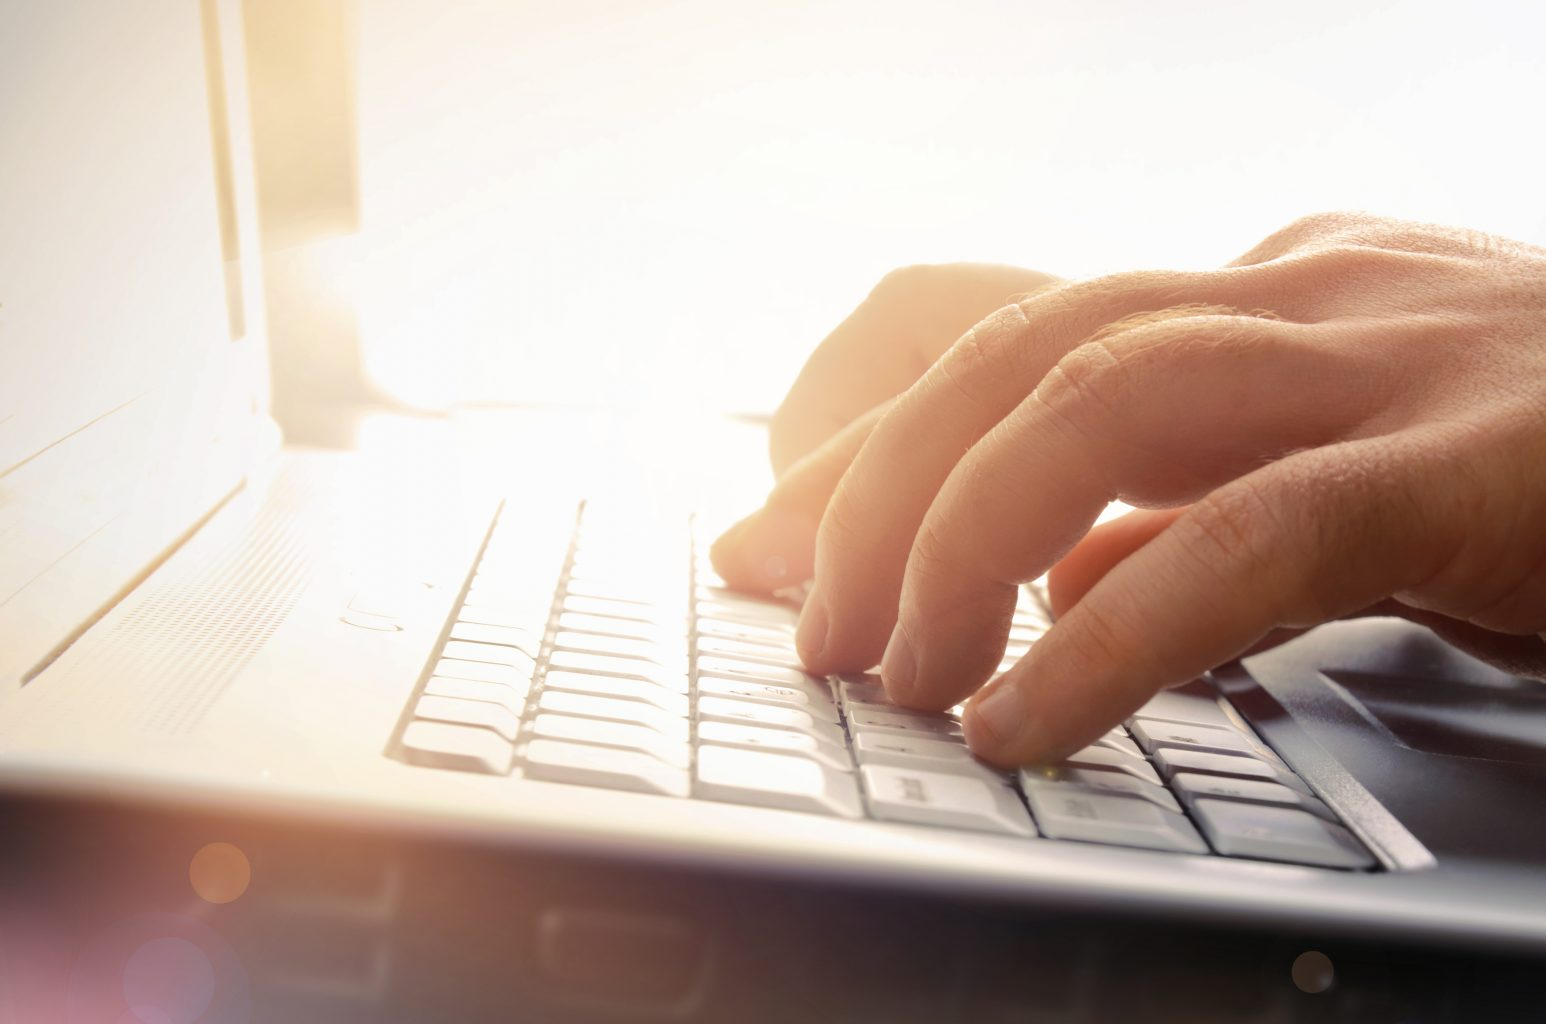 6 Fast and Clever Ways to Earn Some Quick Cash Online